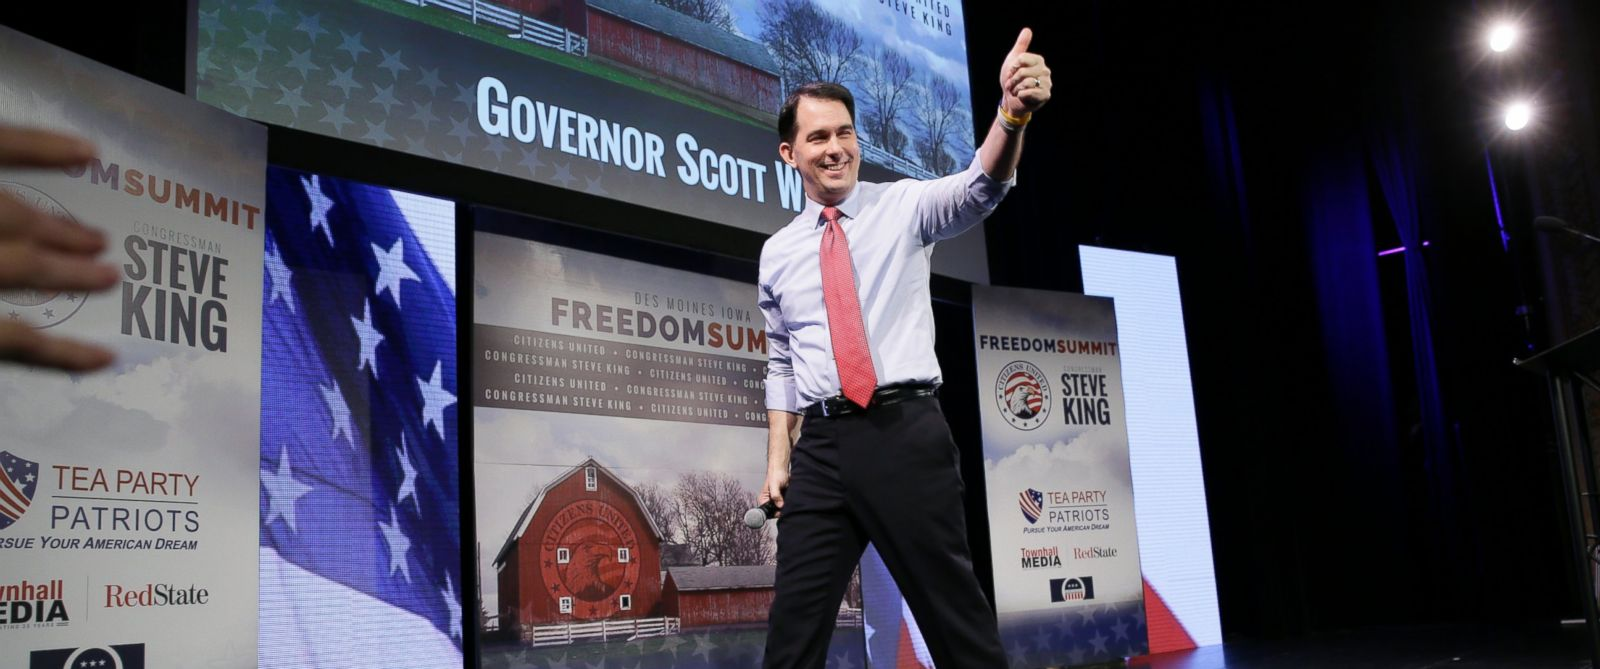 PHOTO: Wisconsin Gov. Scott Walker gestures after speaking at the Freedom Summit, Saturday, Jan. 24, 2015, in Des Moines, Iowa.